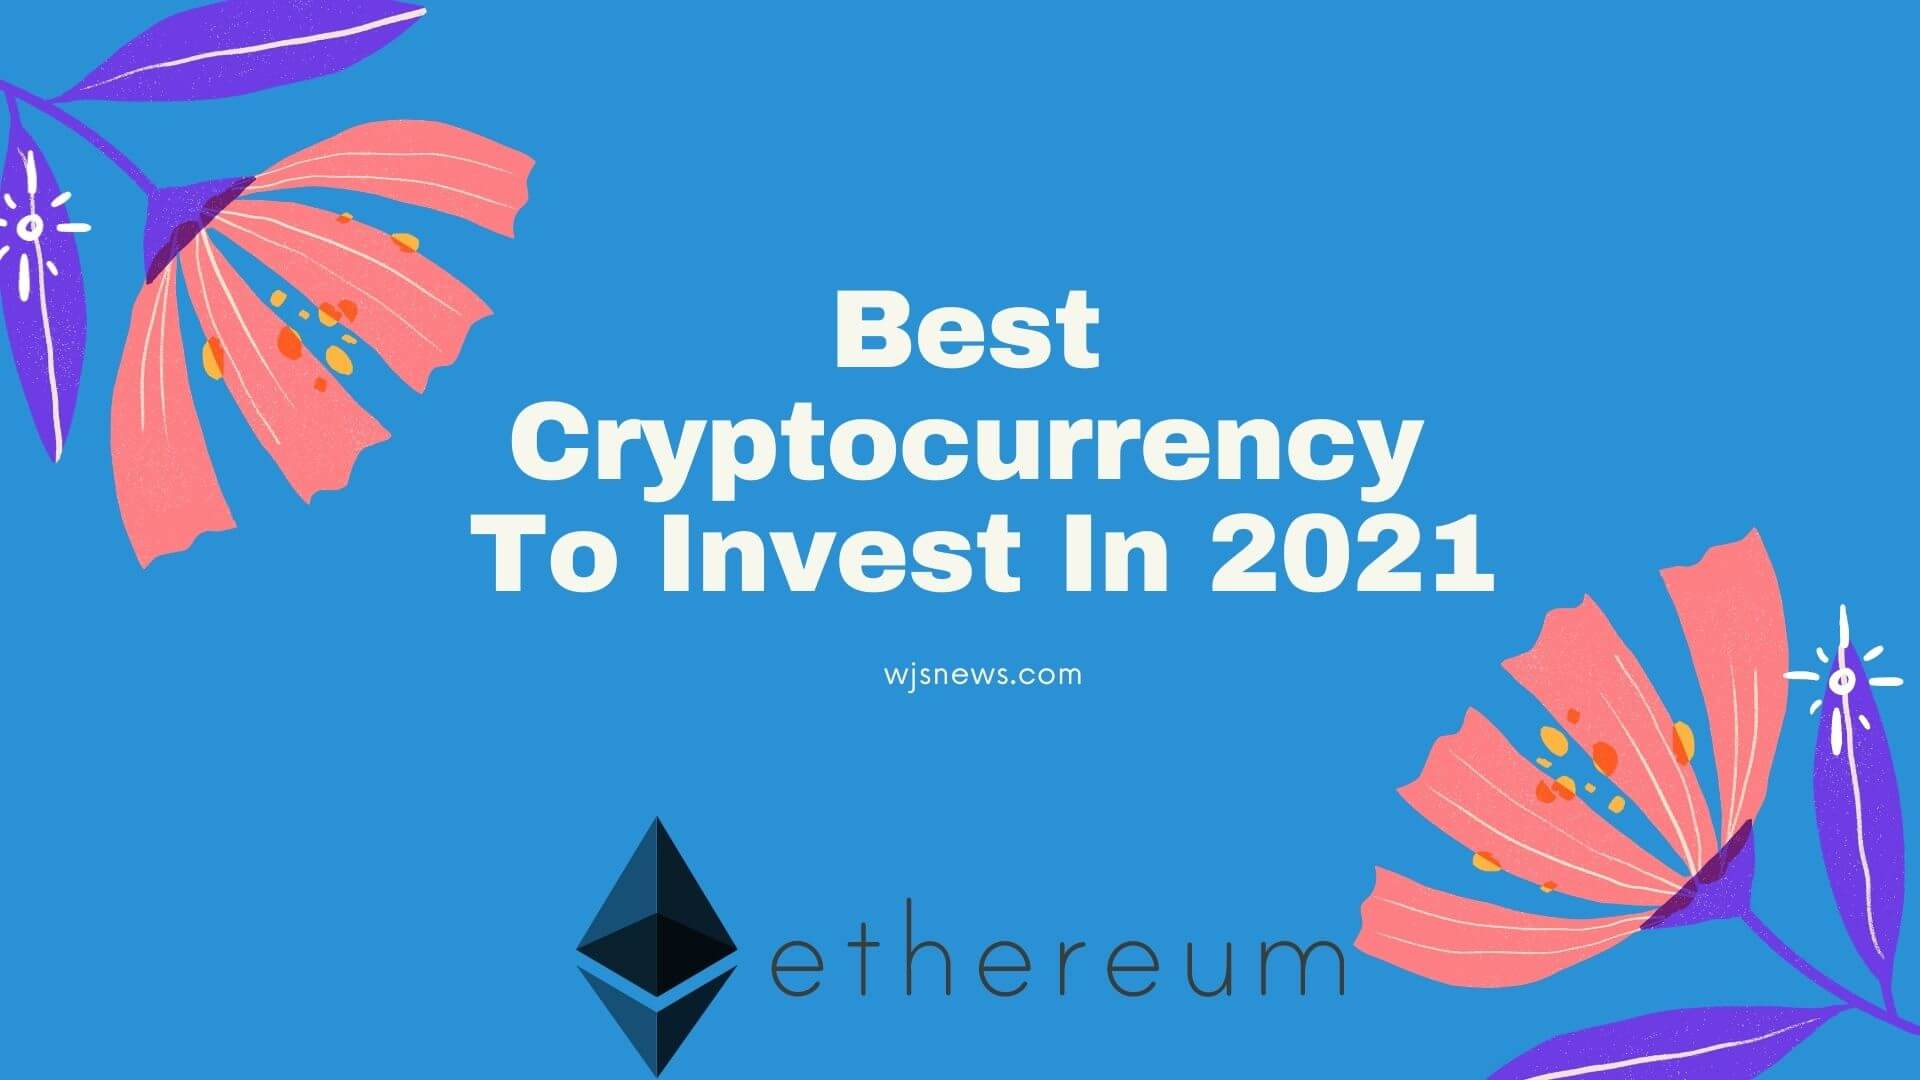 Investment is business through which any investor expect higher Returns. If returns are not as expected we leave investment. But don't worry! Today I am going to share the best cryptocurrency to invest in 2021